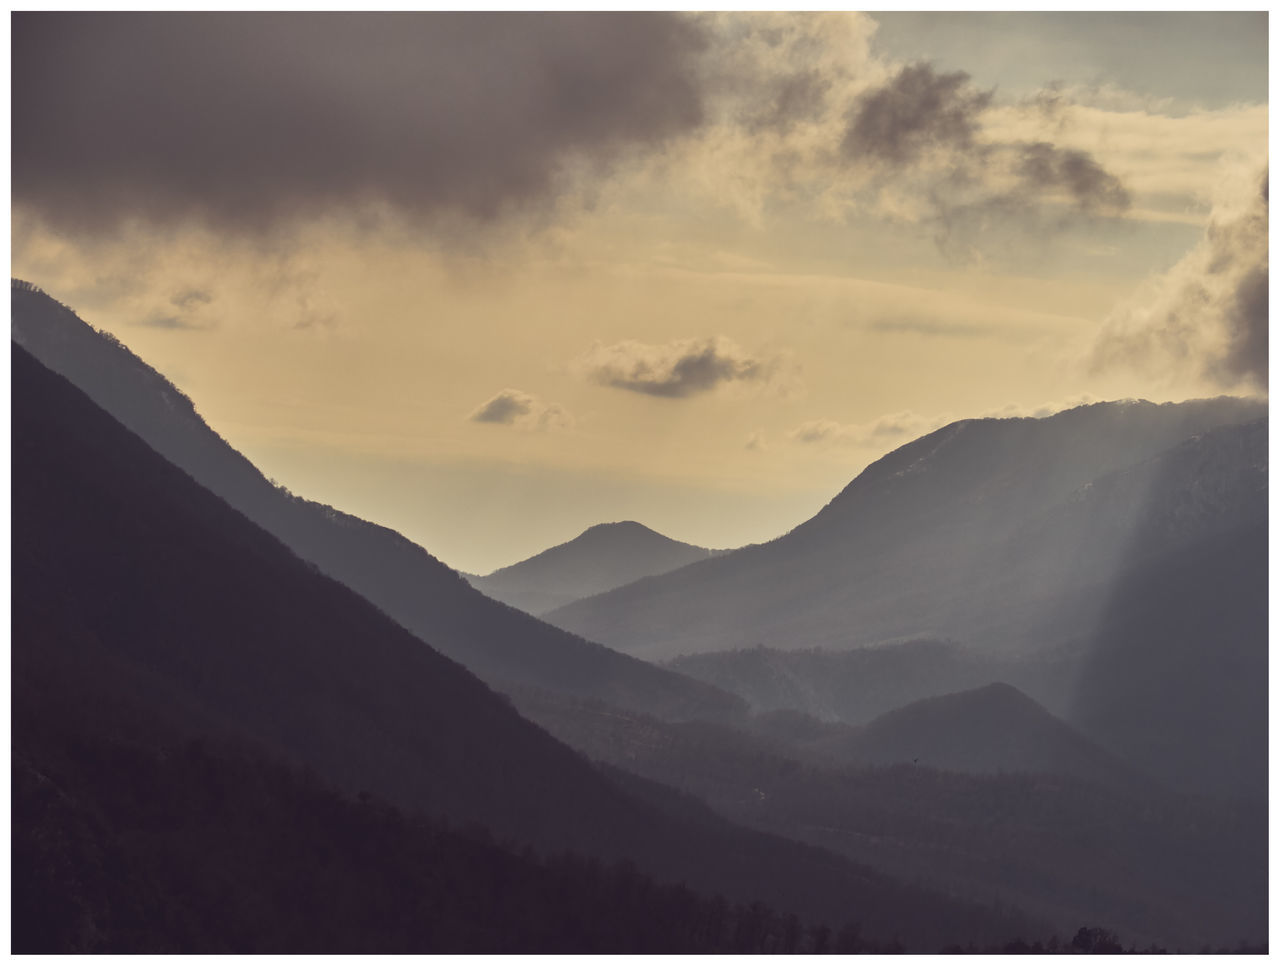 mountain, beauty in nature, nature, mountain range, tranquility, sky, tranquil scene, no people, landscape, outdoors, scenics, day